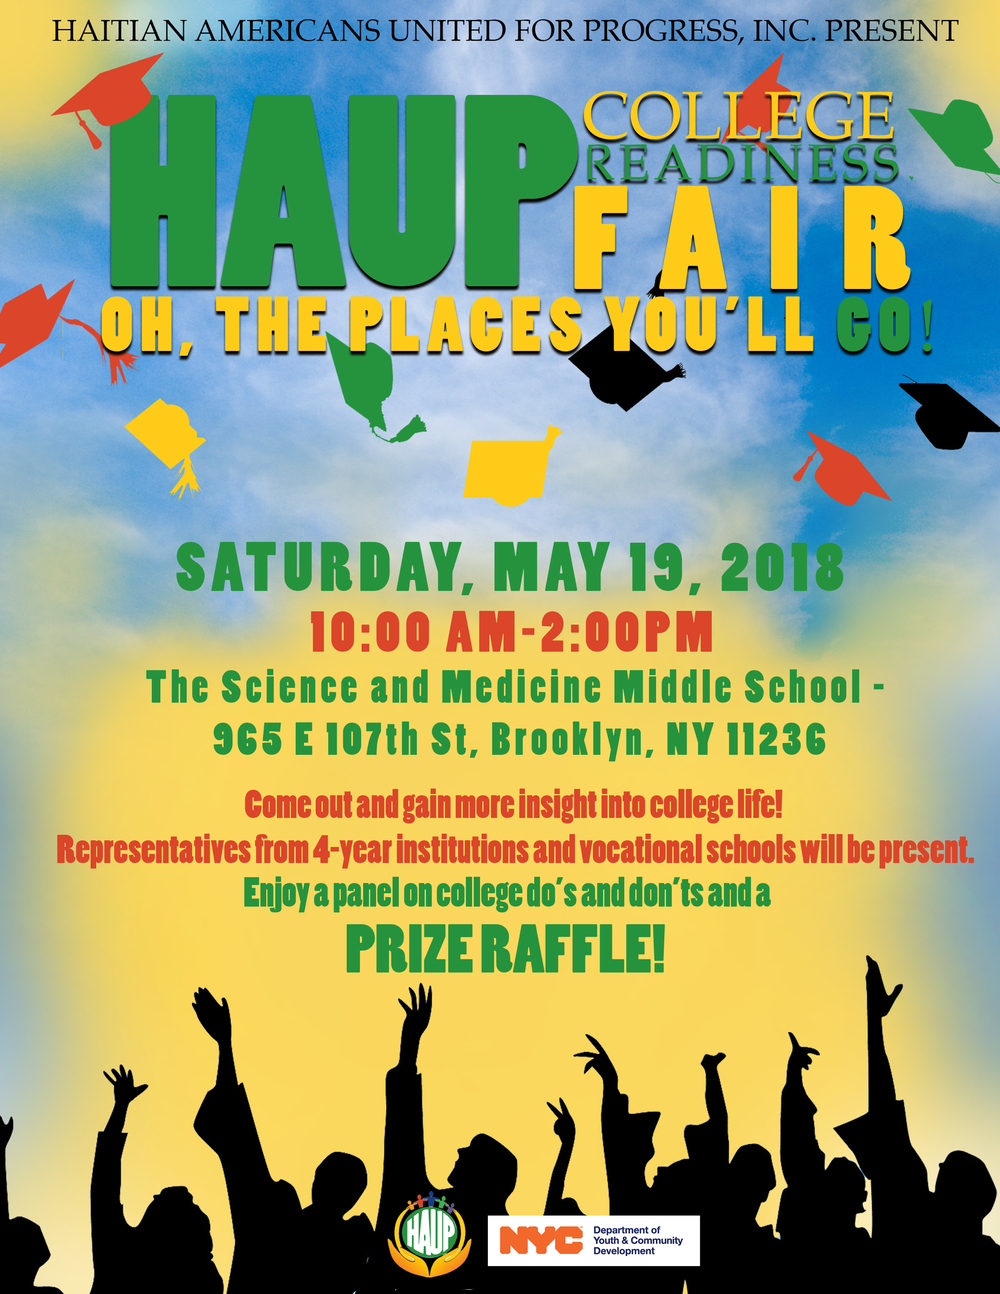 HAUP College Fair 05-19-18.PNG